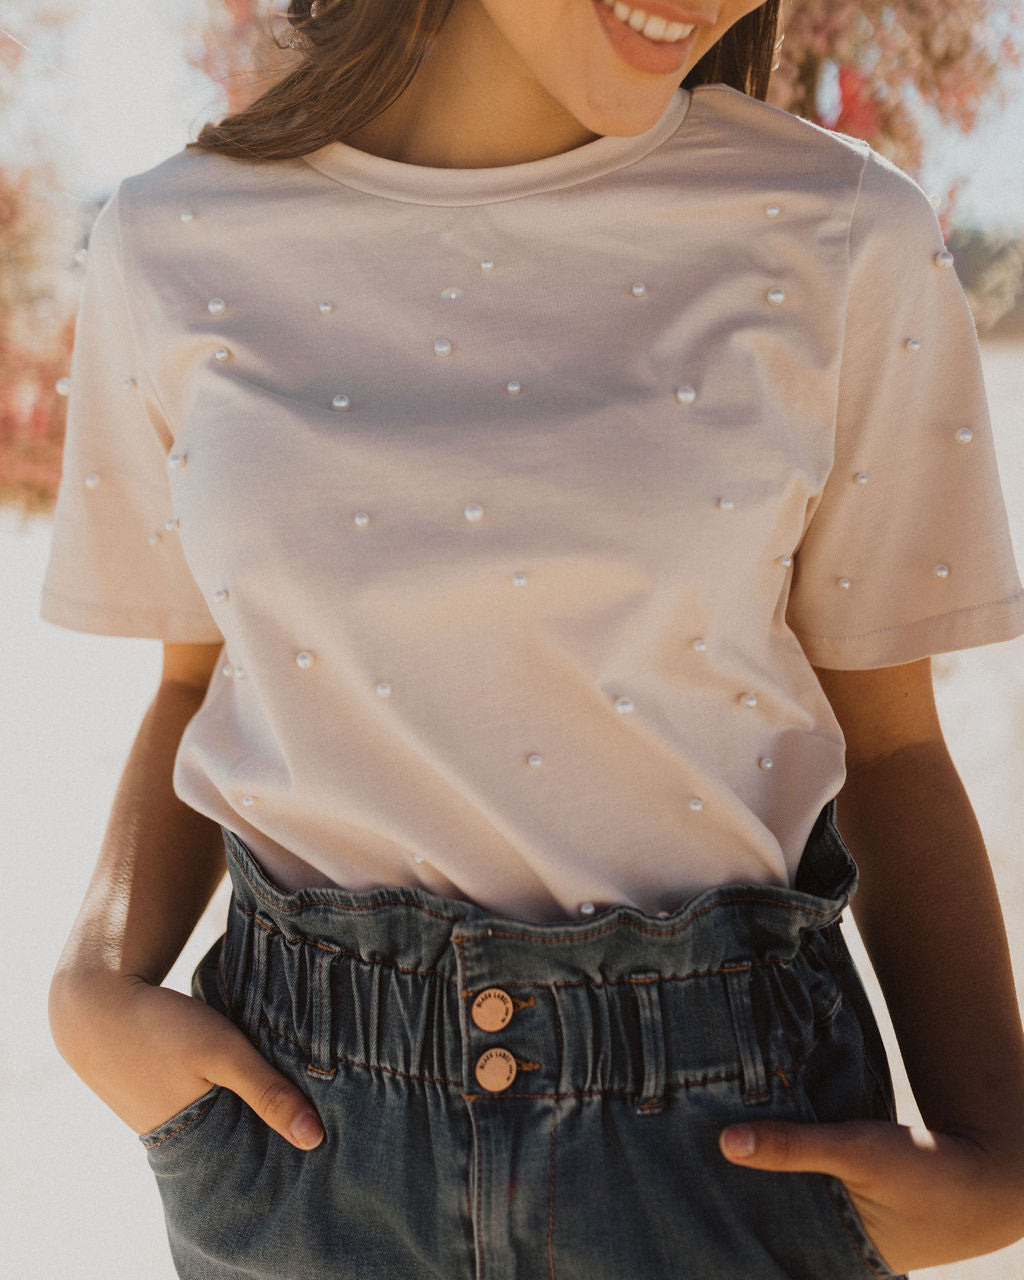 THE PRETTY IN PEARLS EMBELLISHED TOP IN BEIGE